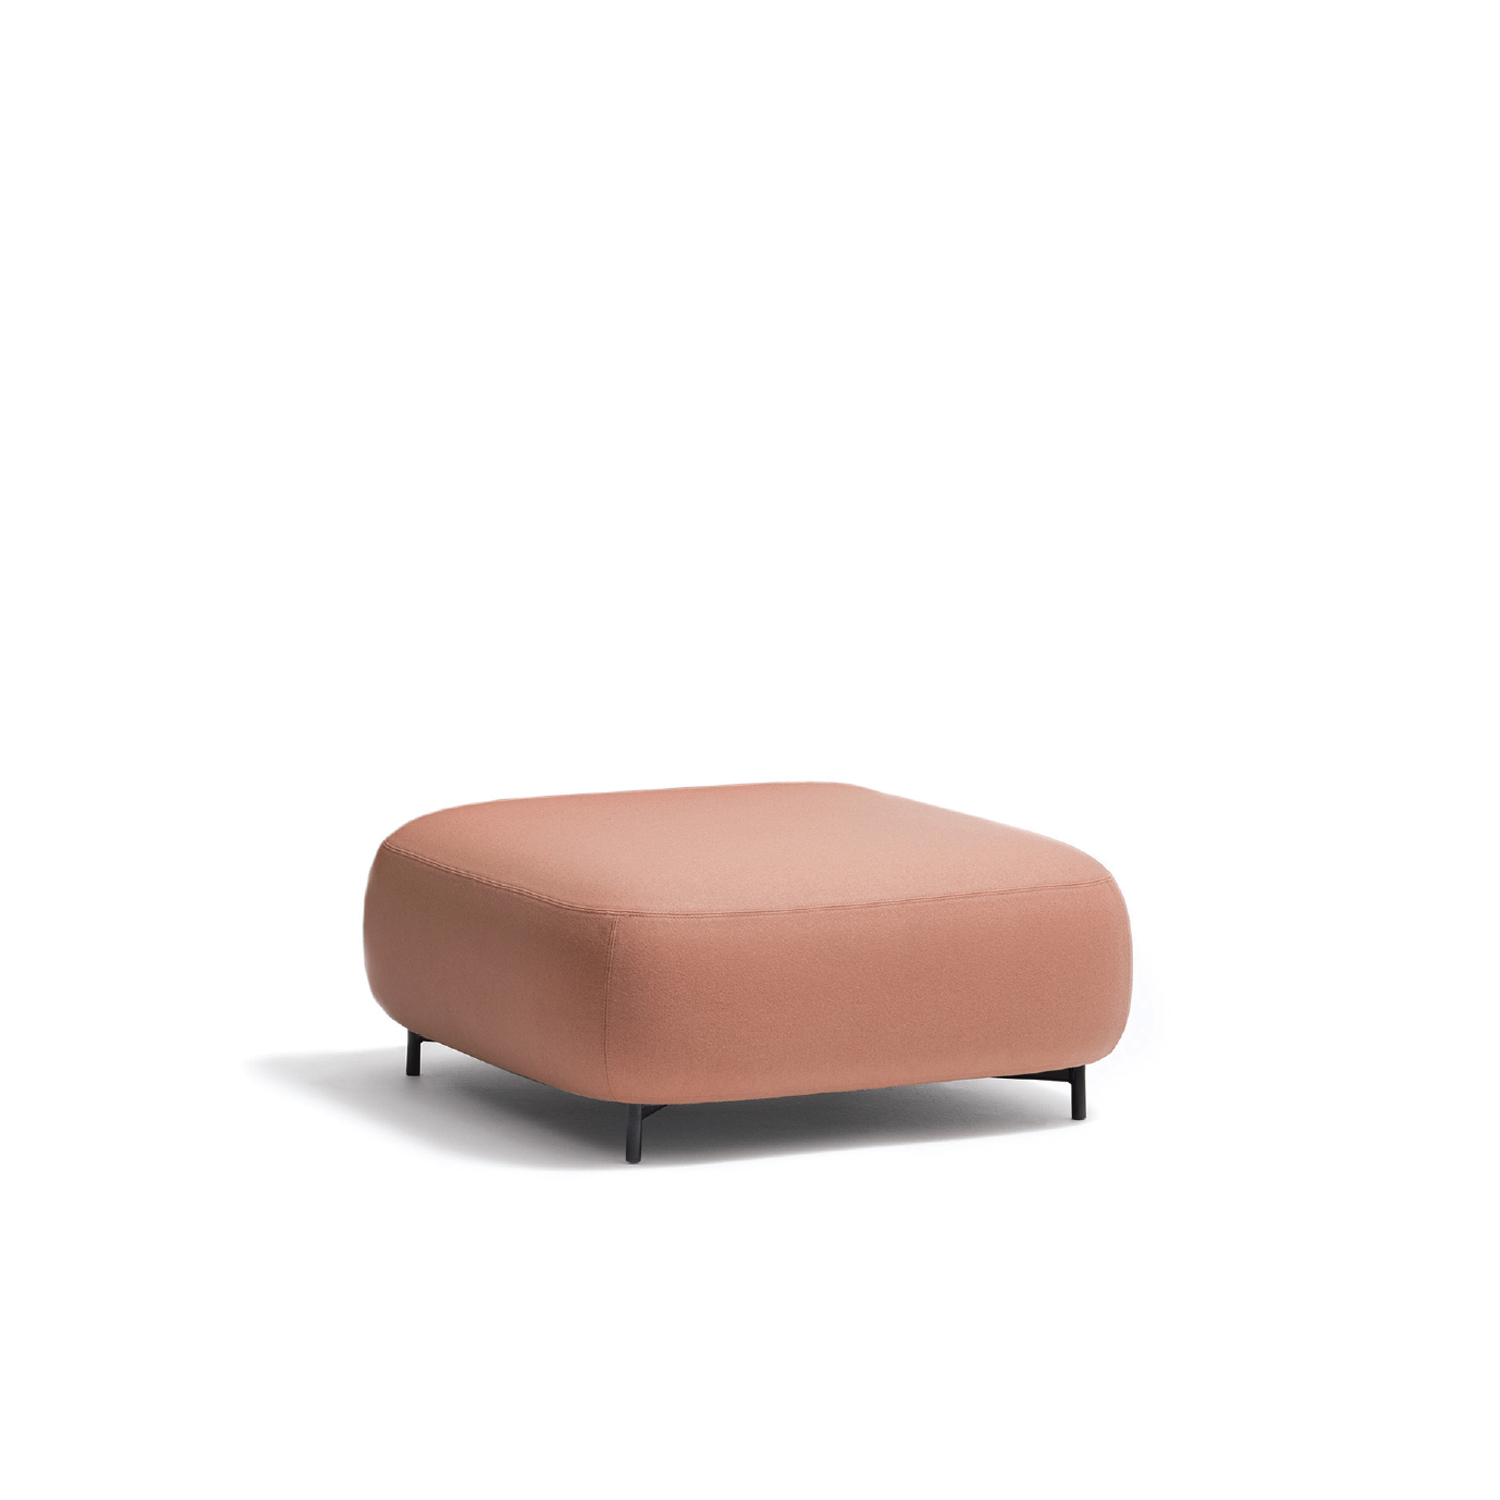 Buddy Pouf Large - <p>Soft lines and clean design feature Buddy collection. The rounded shape of the pouf with a generous and comfortable upholstery is supported by four thin and rigorous legs Ø20mm. These make the pouf extremely functional and visually lift the volume from the ground. Height 400 - 450 mm.</p> <p>A range of upholstery fabrics, materials and colours are available in a number of combinations. Prices may vary. Please enquire for full details.</p>    Matter of Stuff